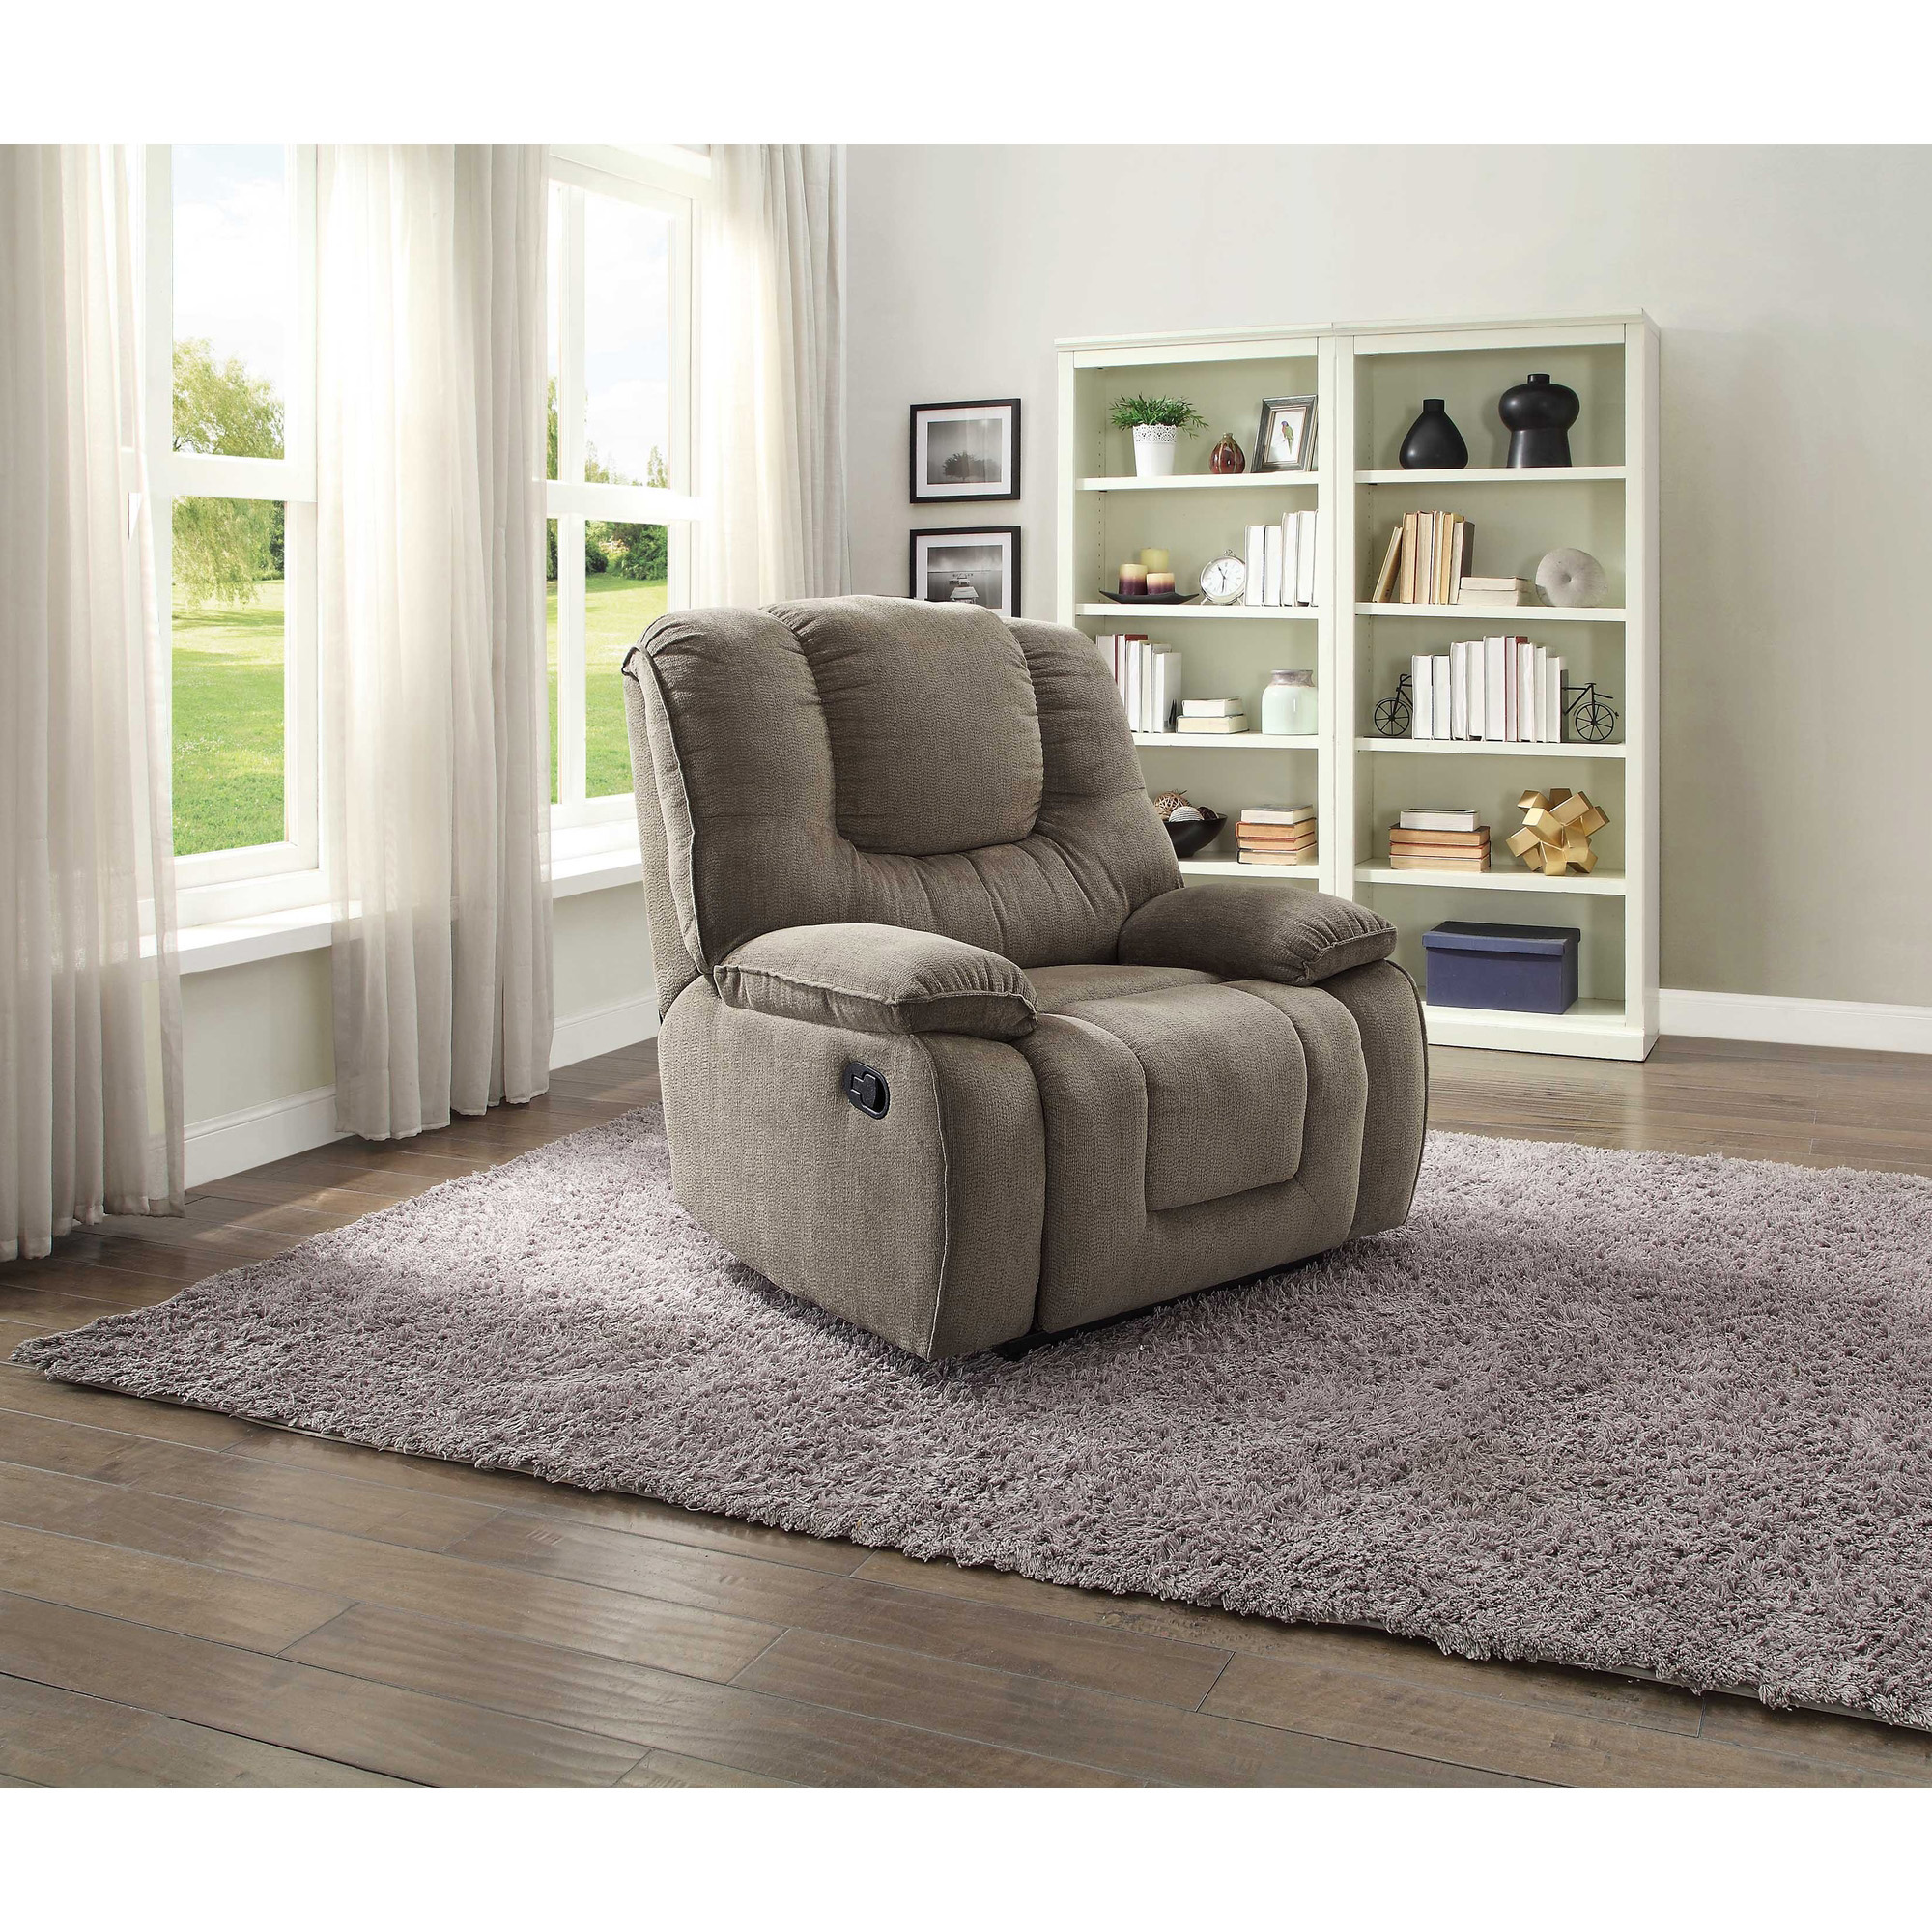 Better Homes and Gardens Big u0026 Tall Recliner with In-Arm Storage and USB Multiple Colors - Walmart.com  sc 1 st  Walmart & Better Homes and Gardens Big u0026 Tall Recliner with In-Arm Storage ... islam-shia.org